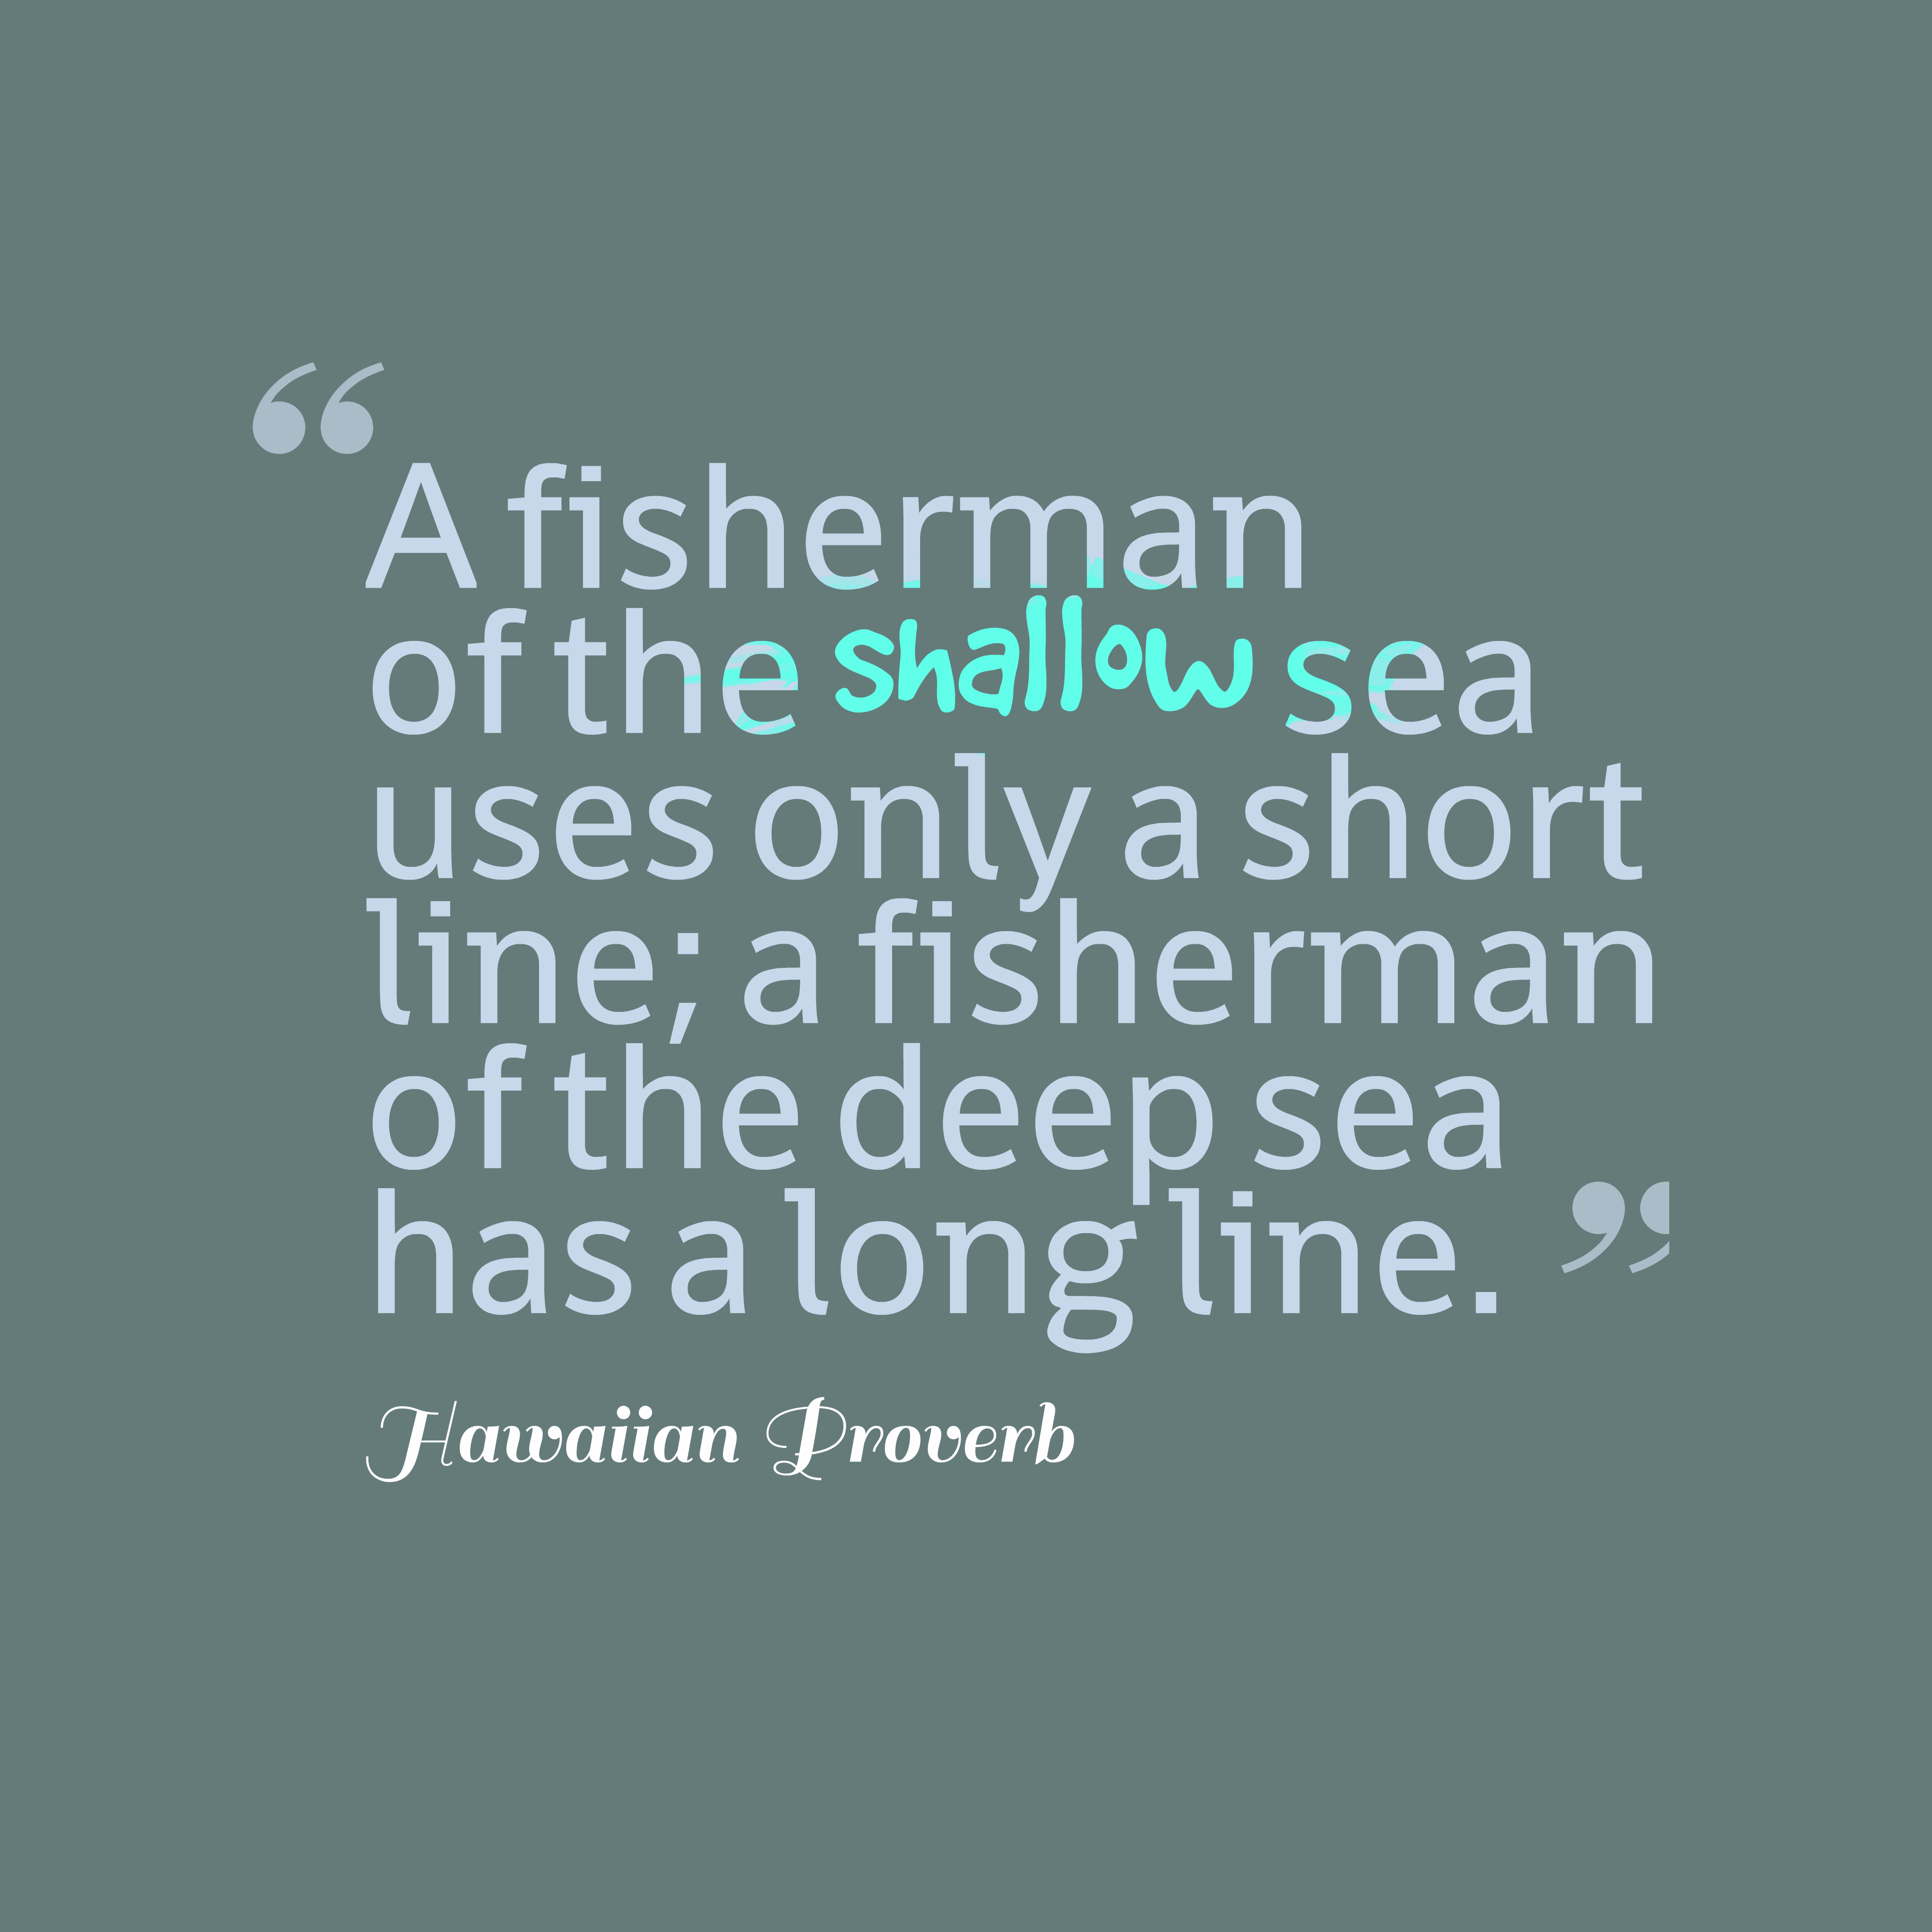 Quotes image of A fisherman of the shallow sea uses only a short line; a fisherman of the deep sea has a long line.